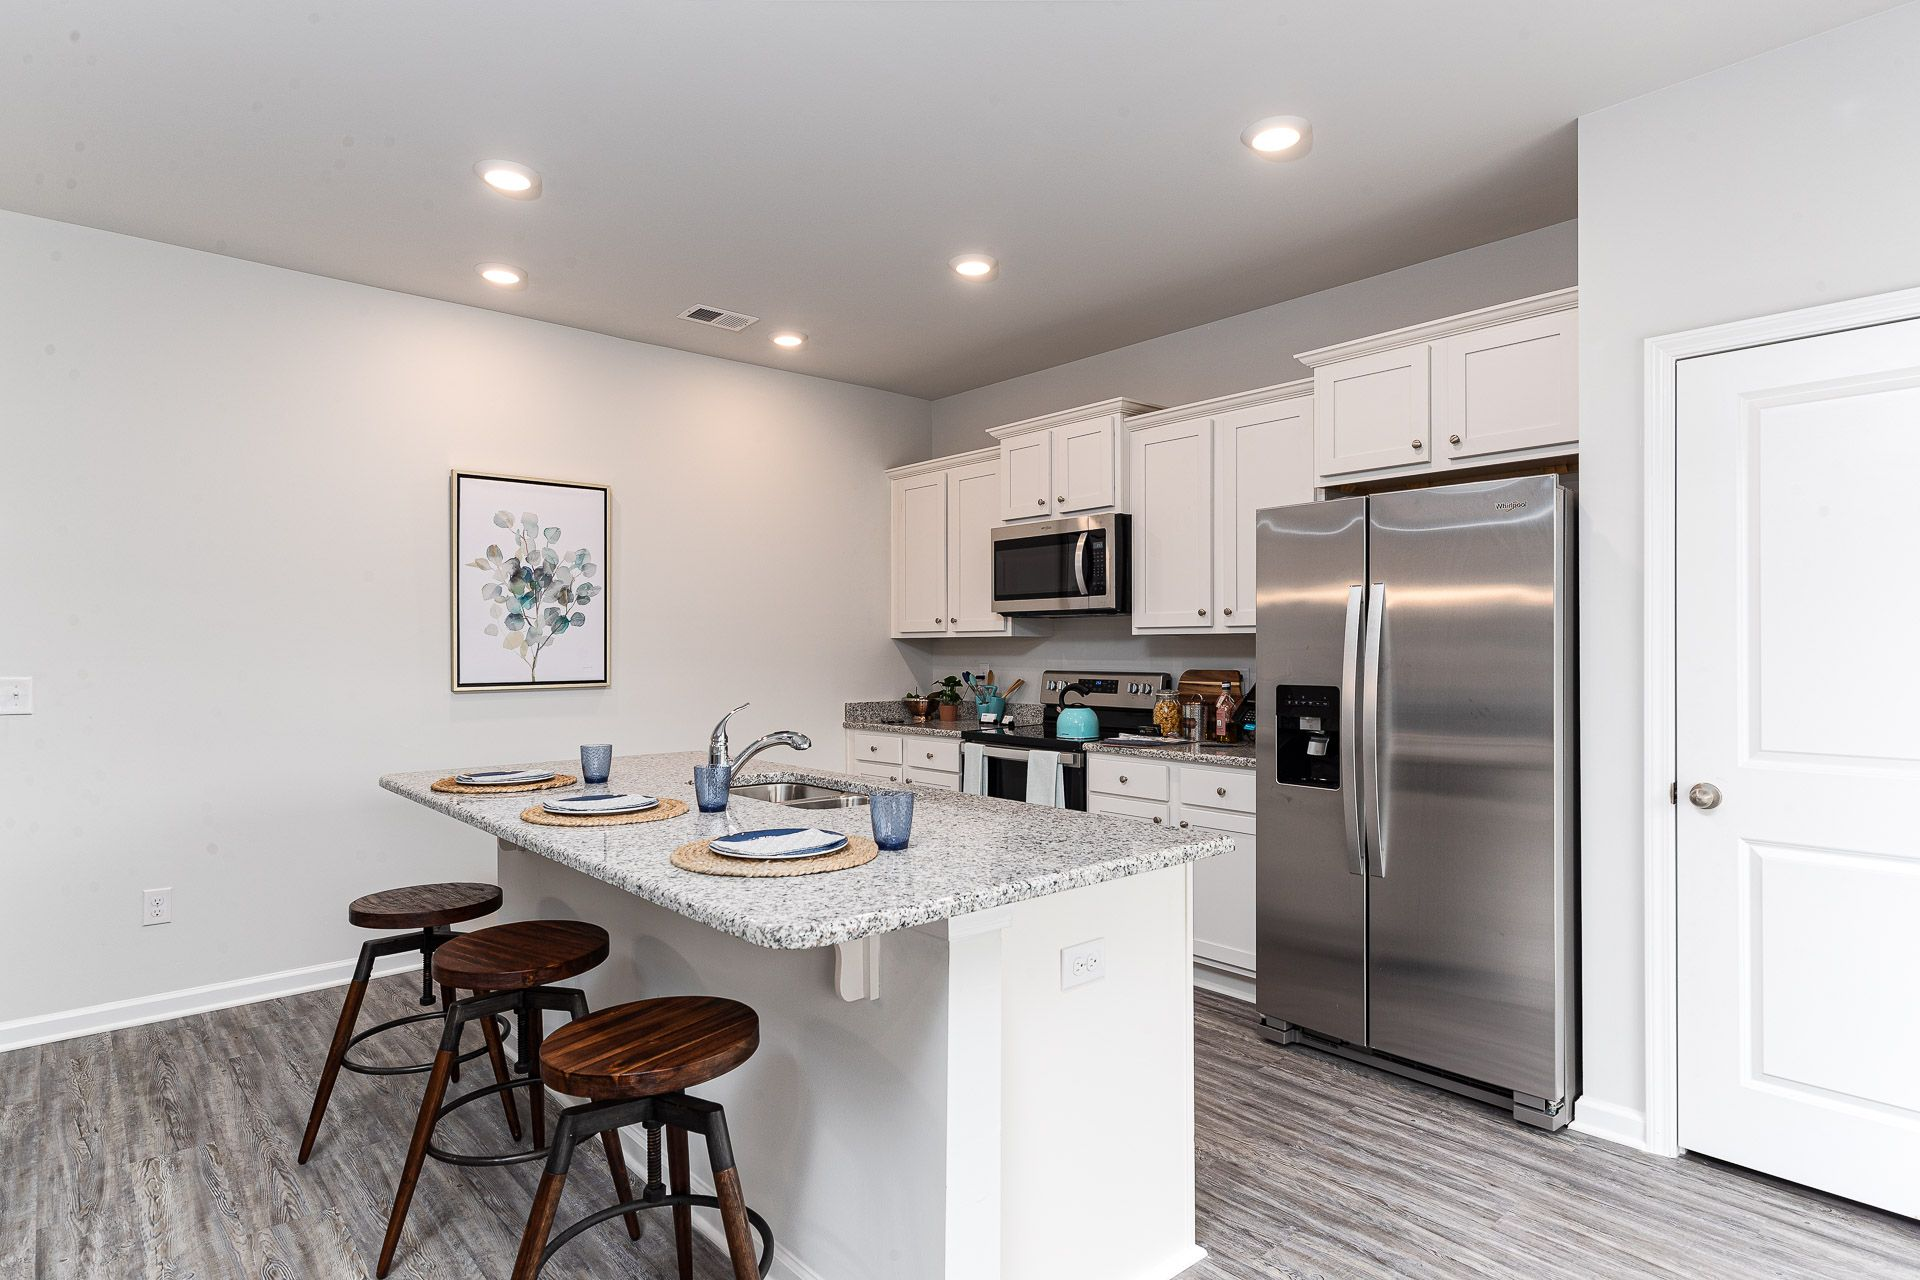 Kitchen featured in the KERRY By D.R. Horton in Myrtle Beach, SC